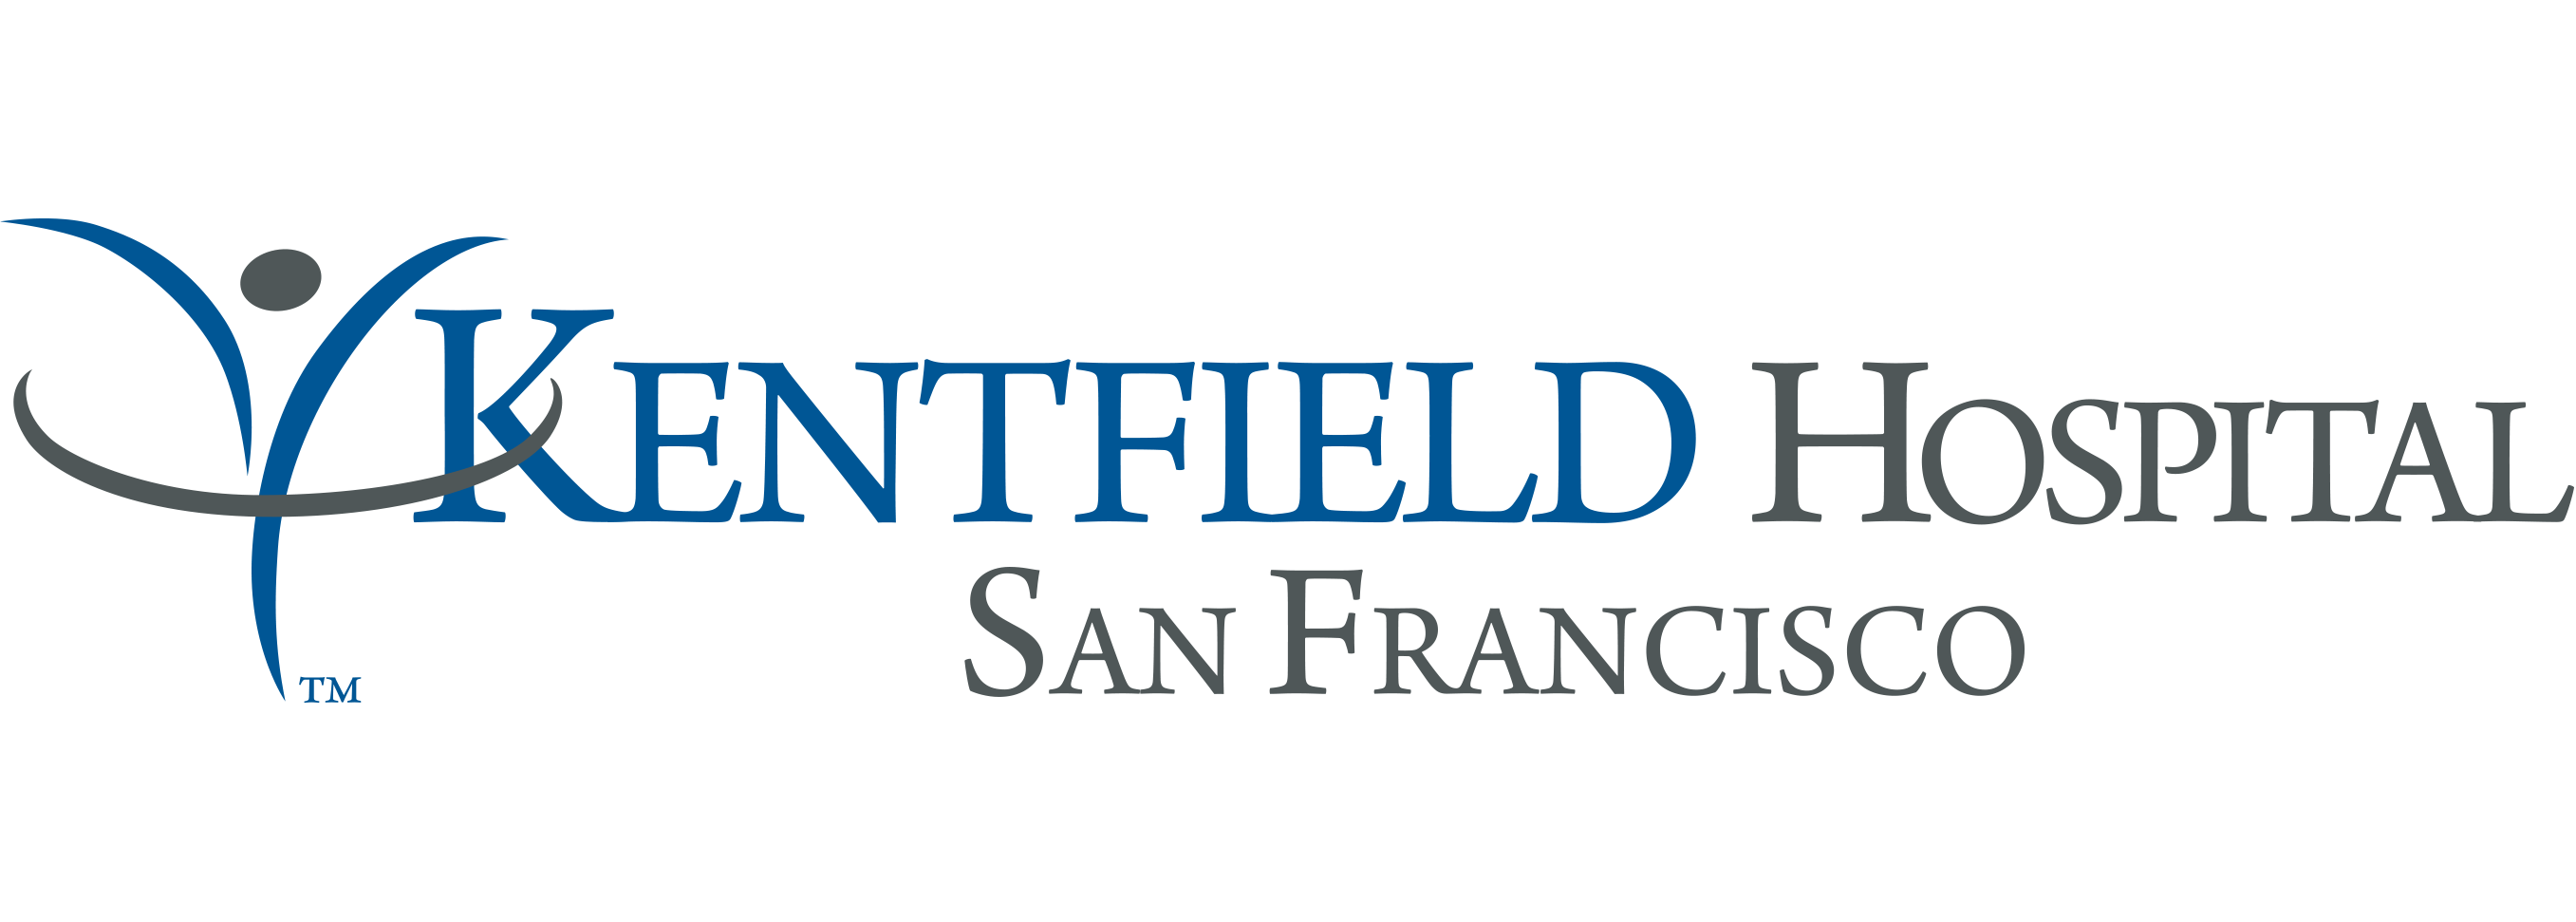 kentfield-san-francisco-logo